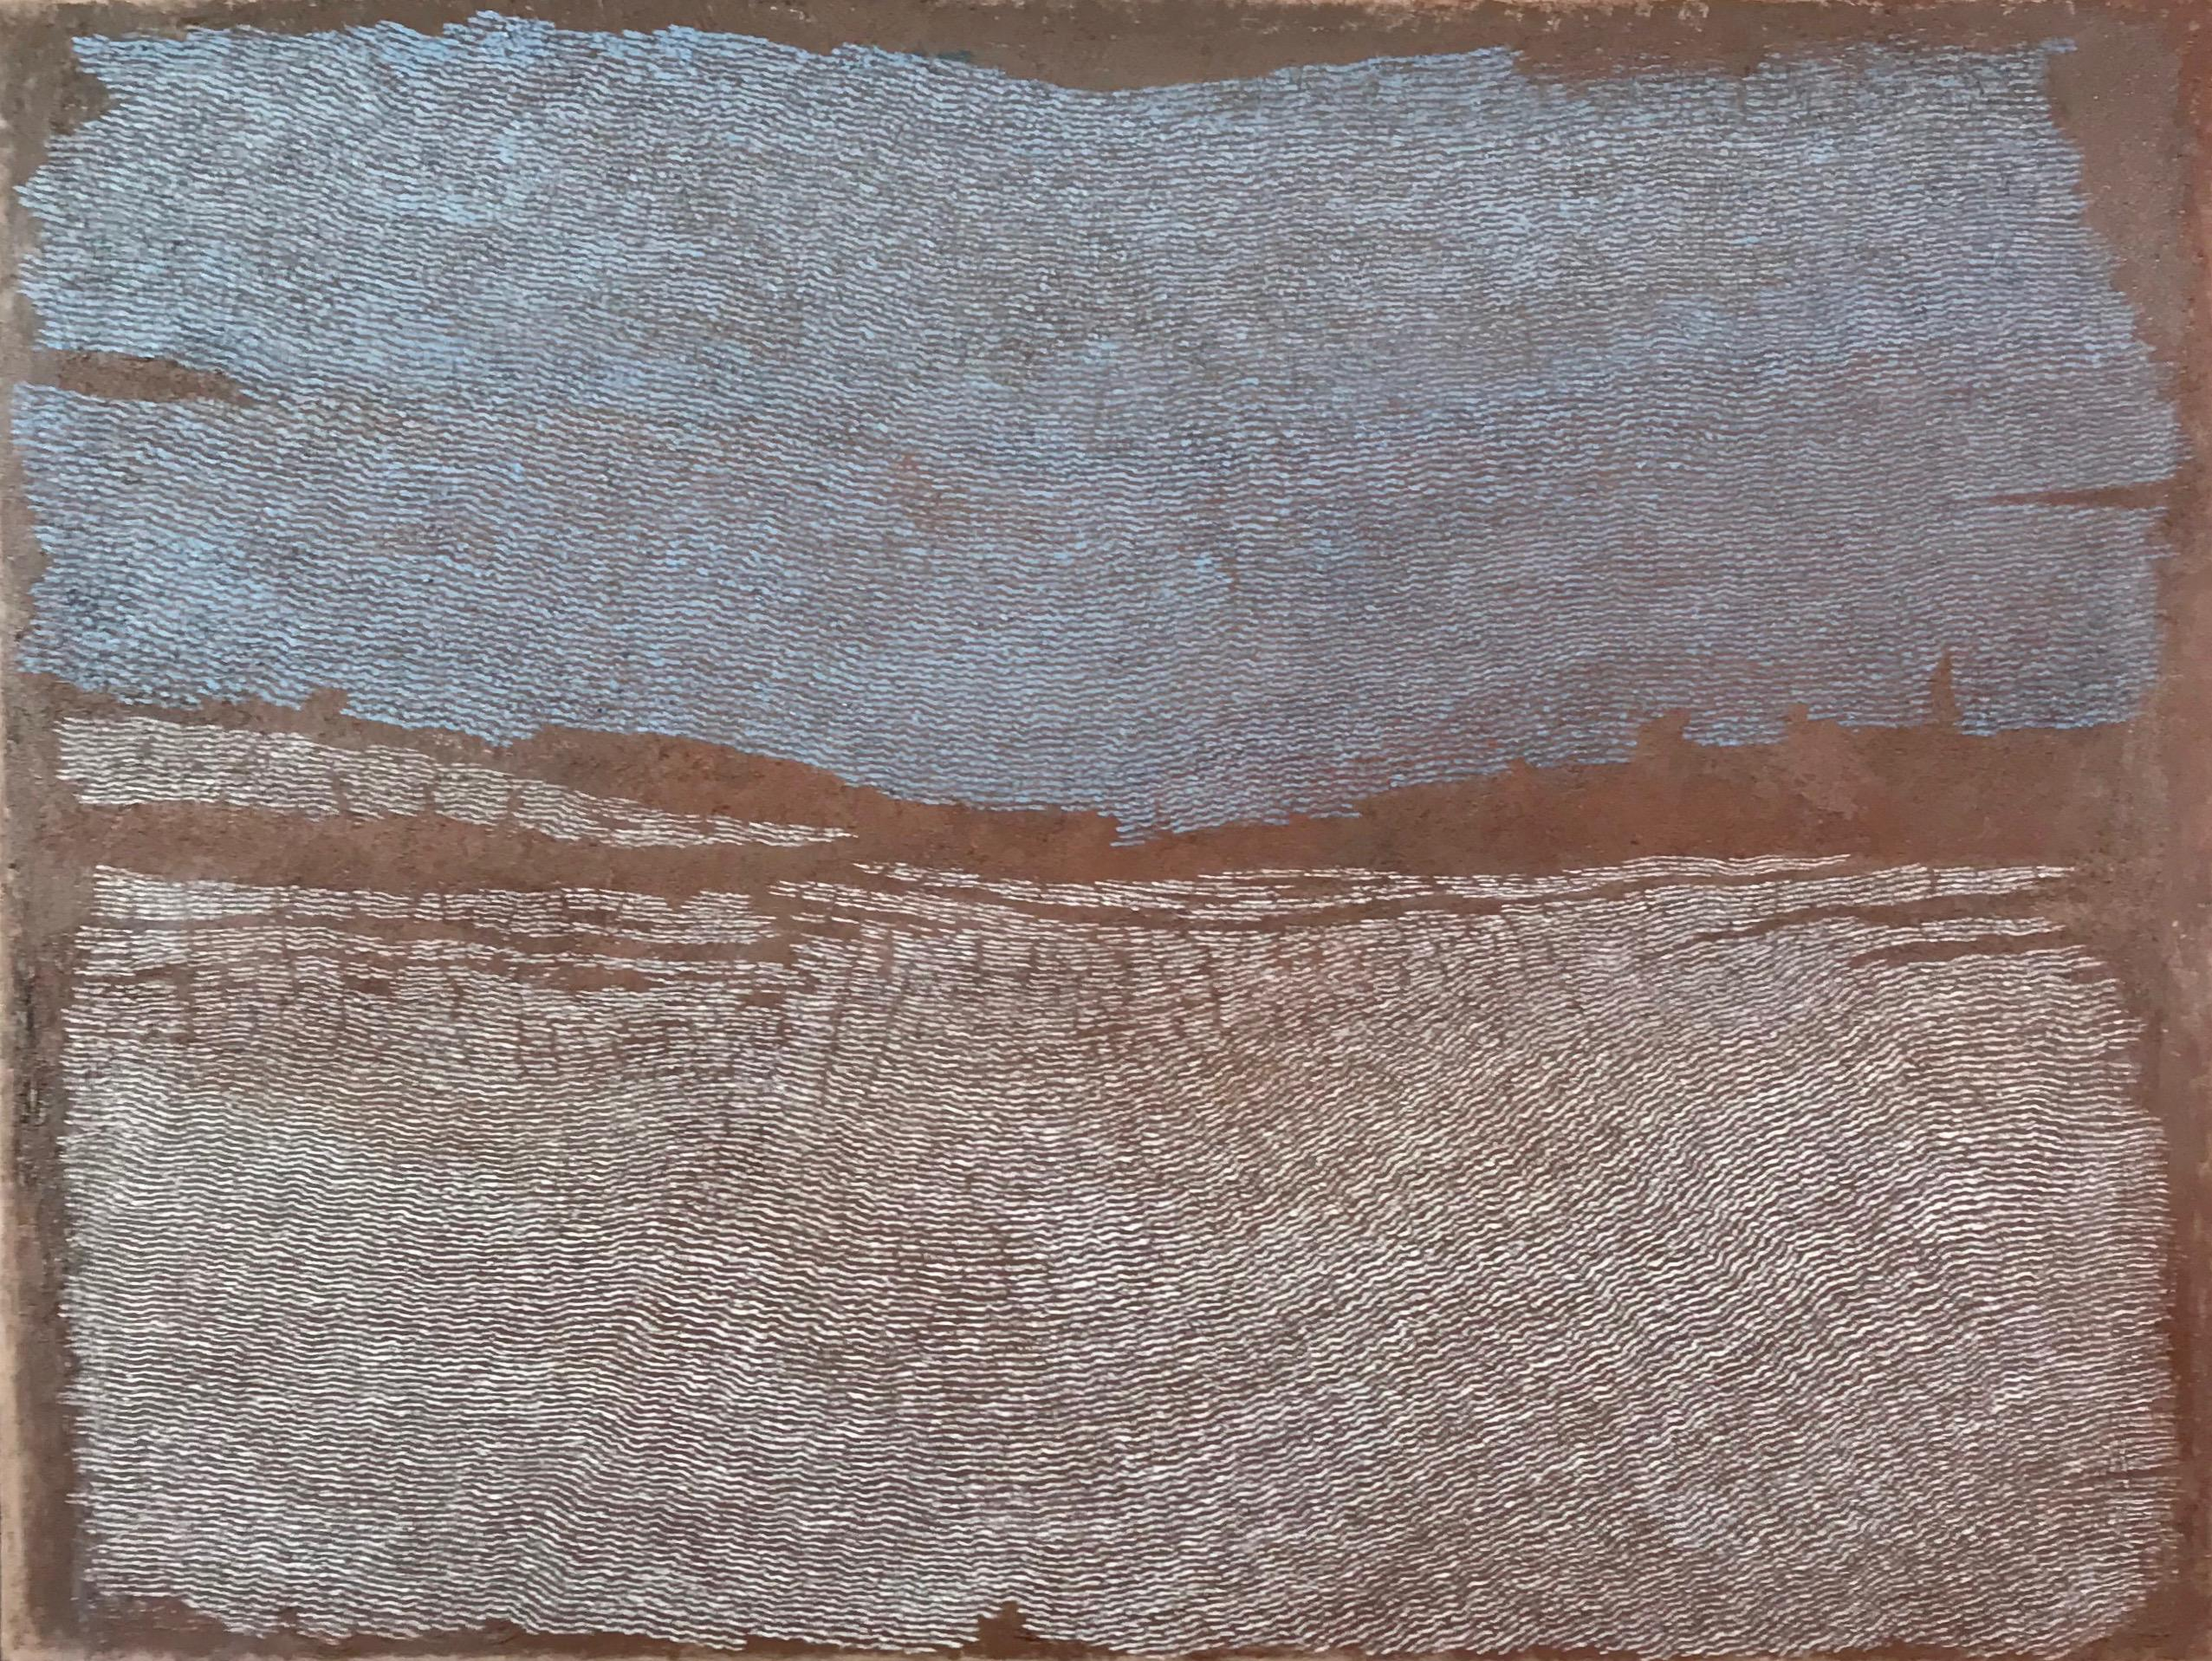 Low Tide Estuary, Pamela Burns. Linear abstract oil painting, Welsh harbour